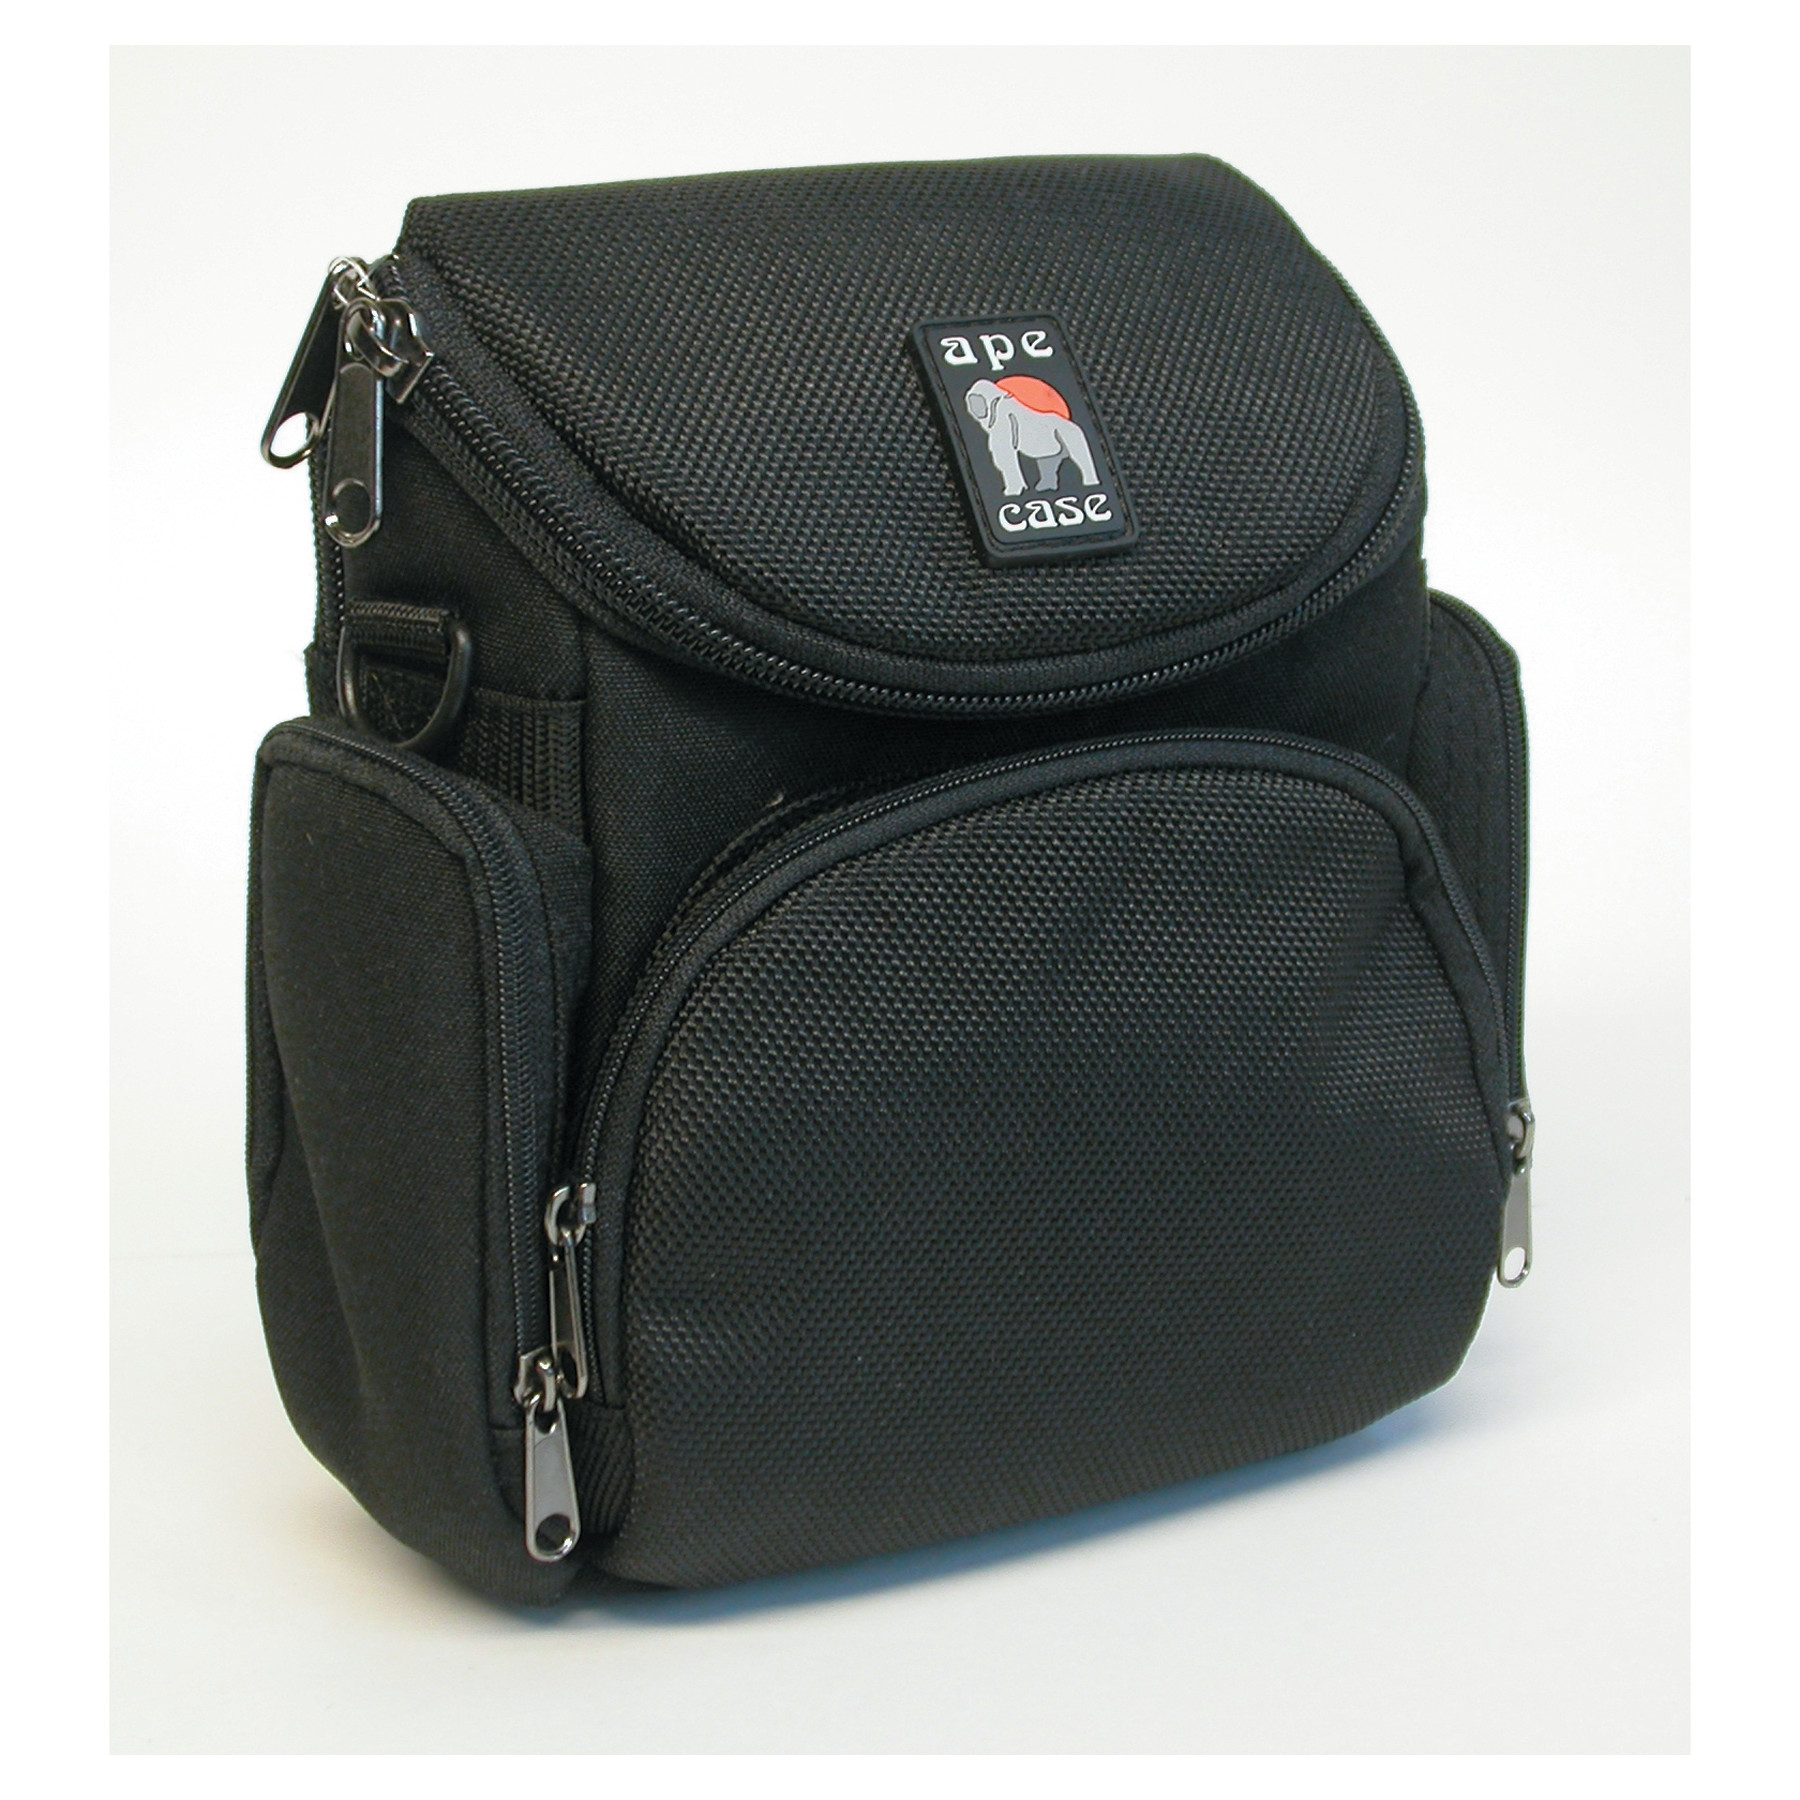 Ape Case Camcorder/Digital Camera Case, Ballistic Nylon, 7 1/4 x 2 x 5, Black